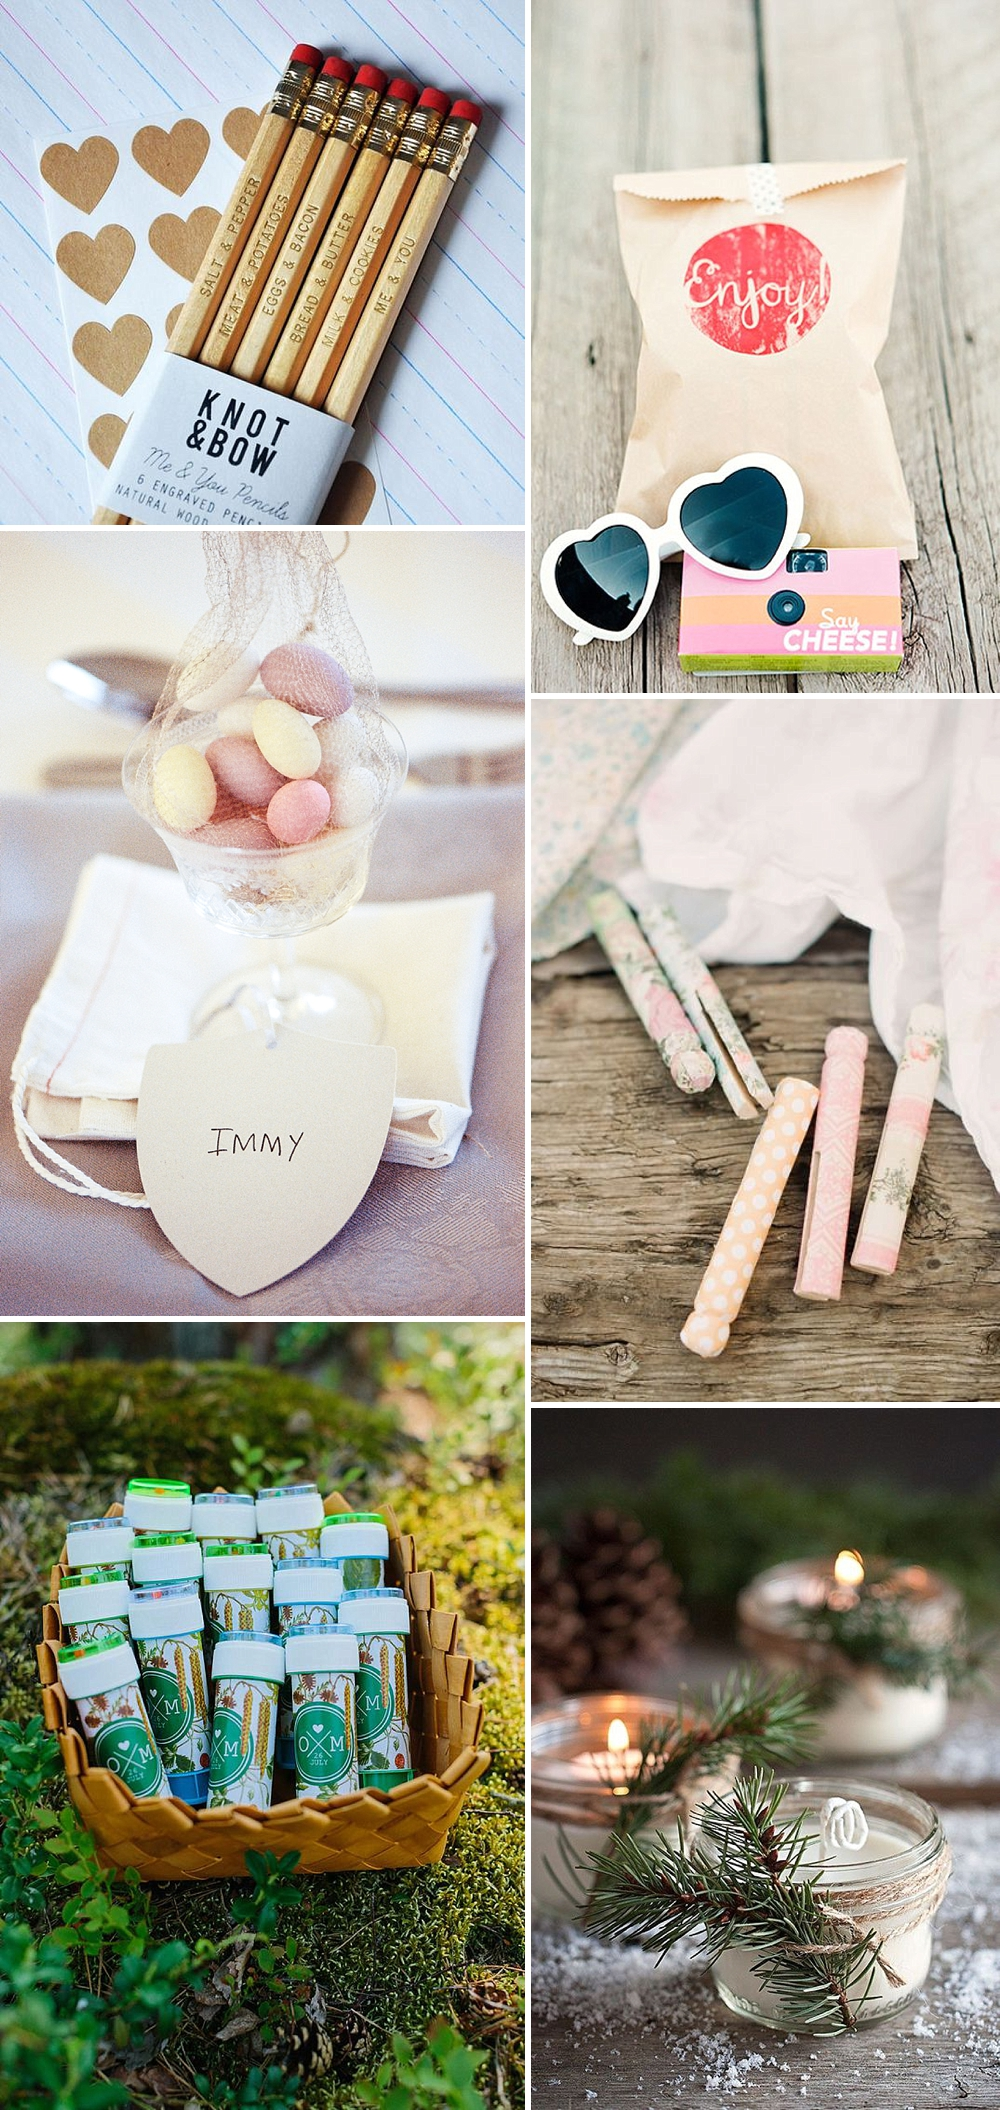 Wedding Gift Ideas Uk: Unique And Eco-Friendly Wedding Favour Ideas Your Guests